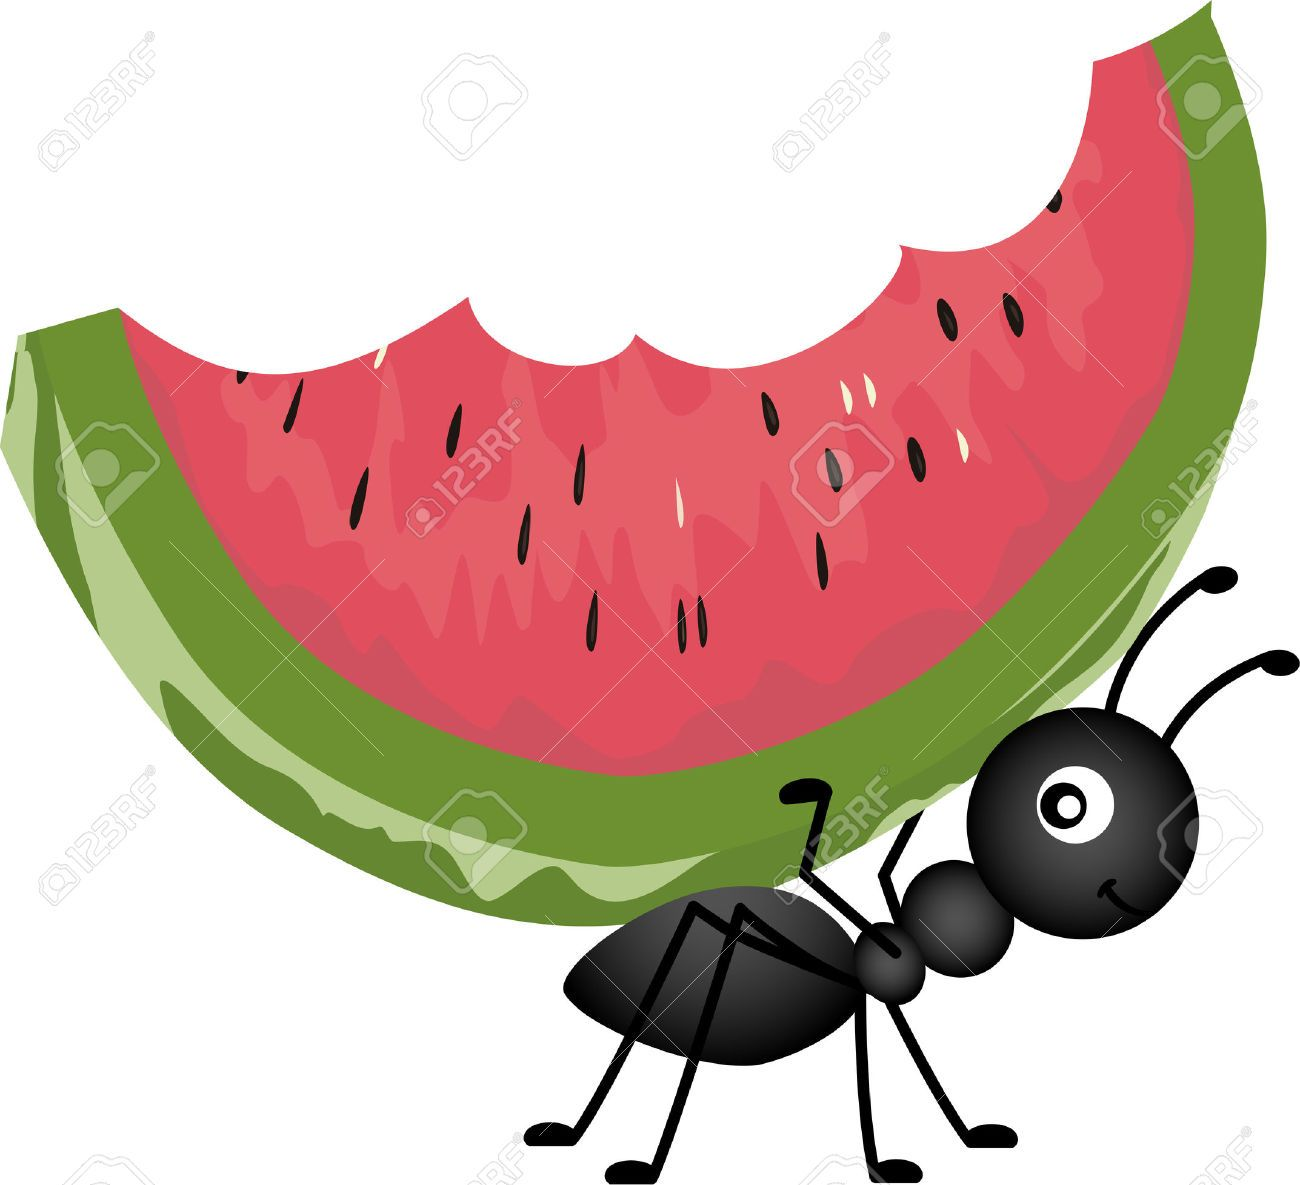 Ant picnic food clipart vector free library picnic food : Ant Carrying Watermelon Illustration | Girly Picnic ... vector free library